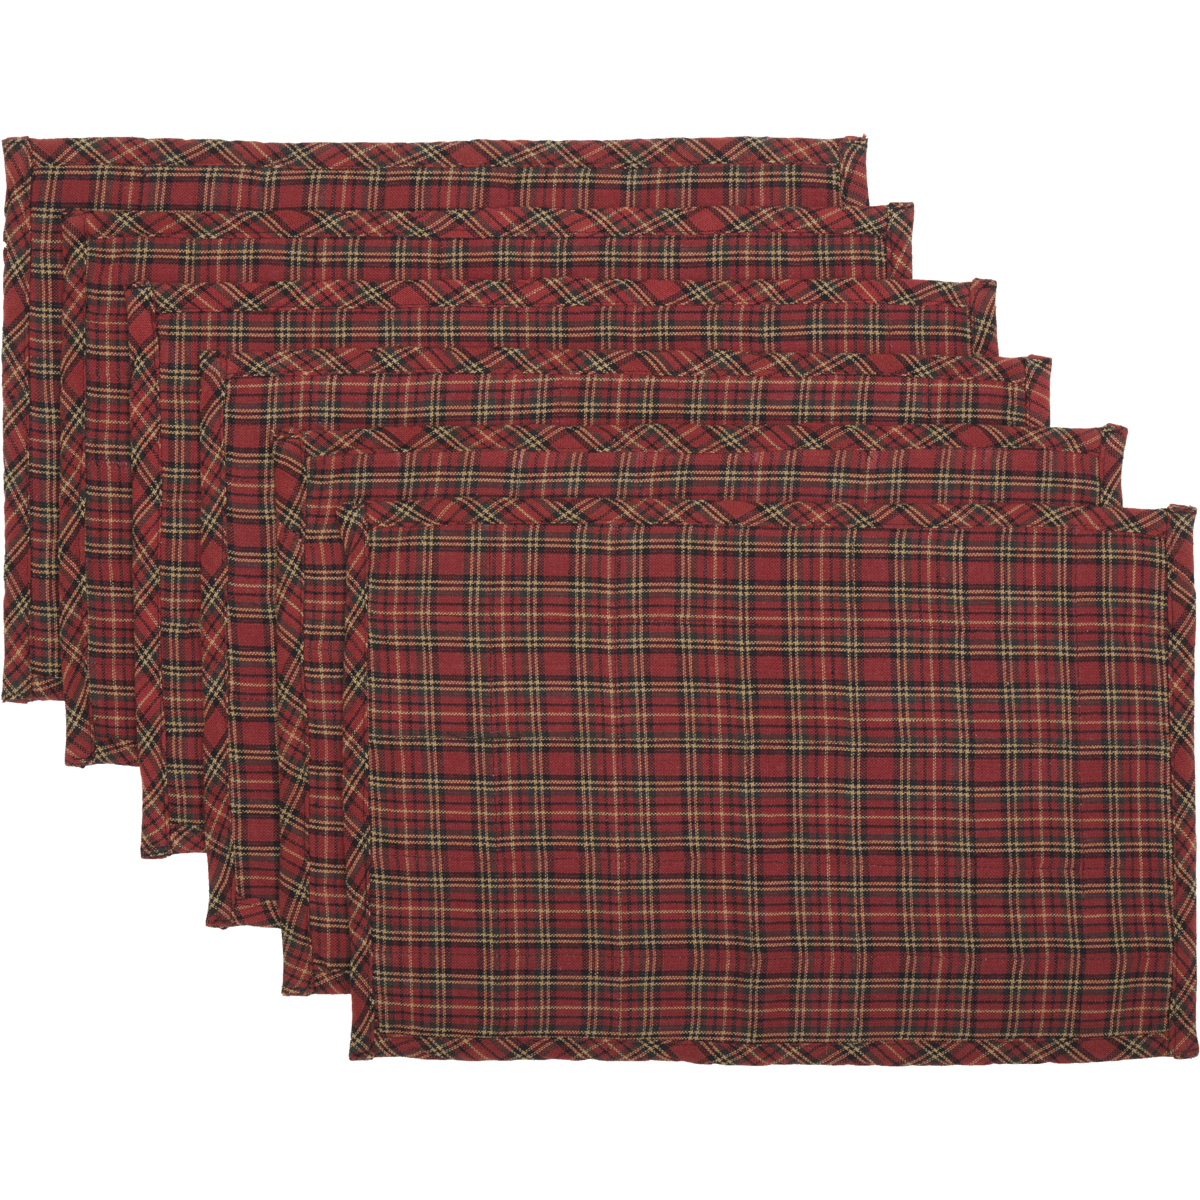 Seasonal Tabletop & Kitchen Tartan Holiday Red Placemat Set of 6 5b17f29d2a00e41bef2fa663